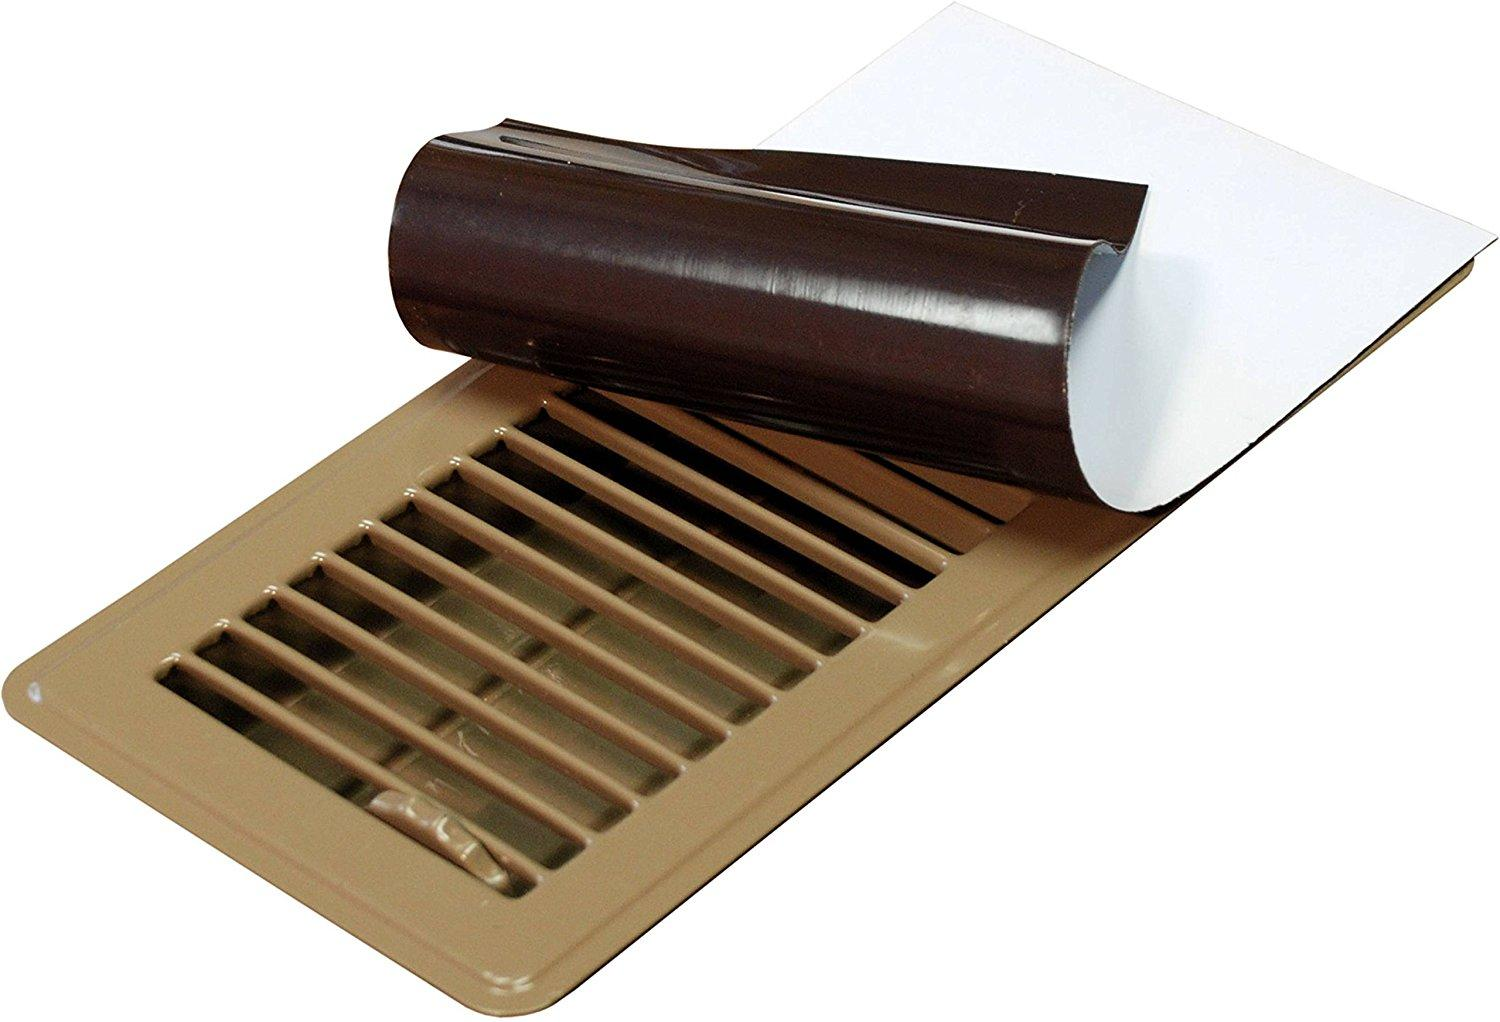 Accord amagcov815 magnetic vent cover 8 inch x 15 inch 3 for Wood floor registers 6 x 14